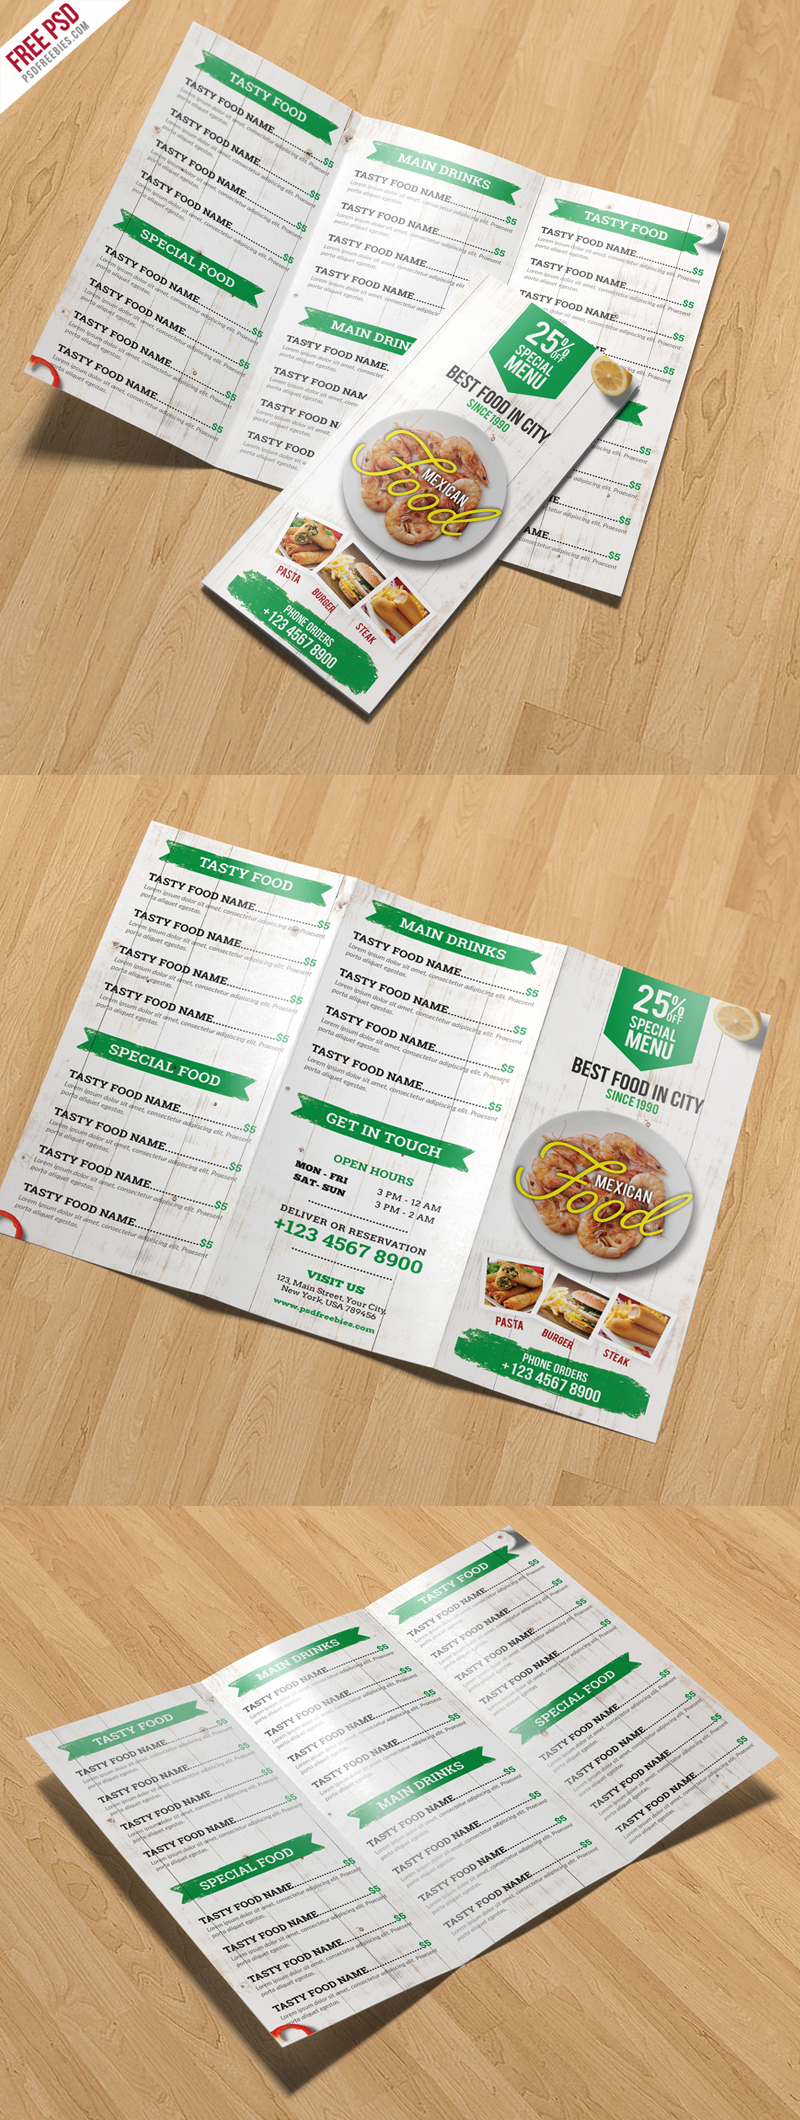 Restaurant Menu TriFold Brochure PSD Template